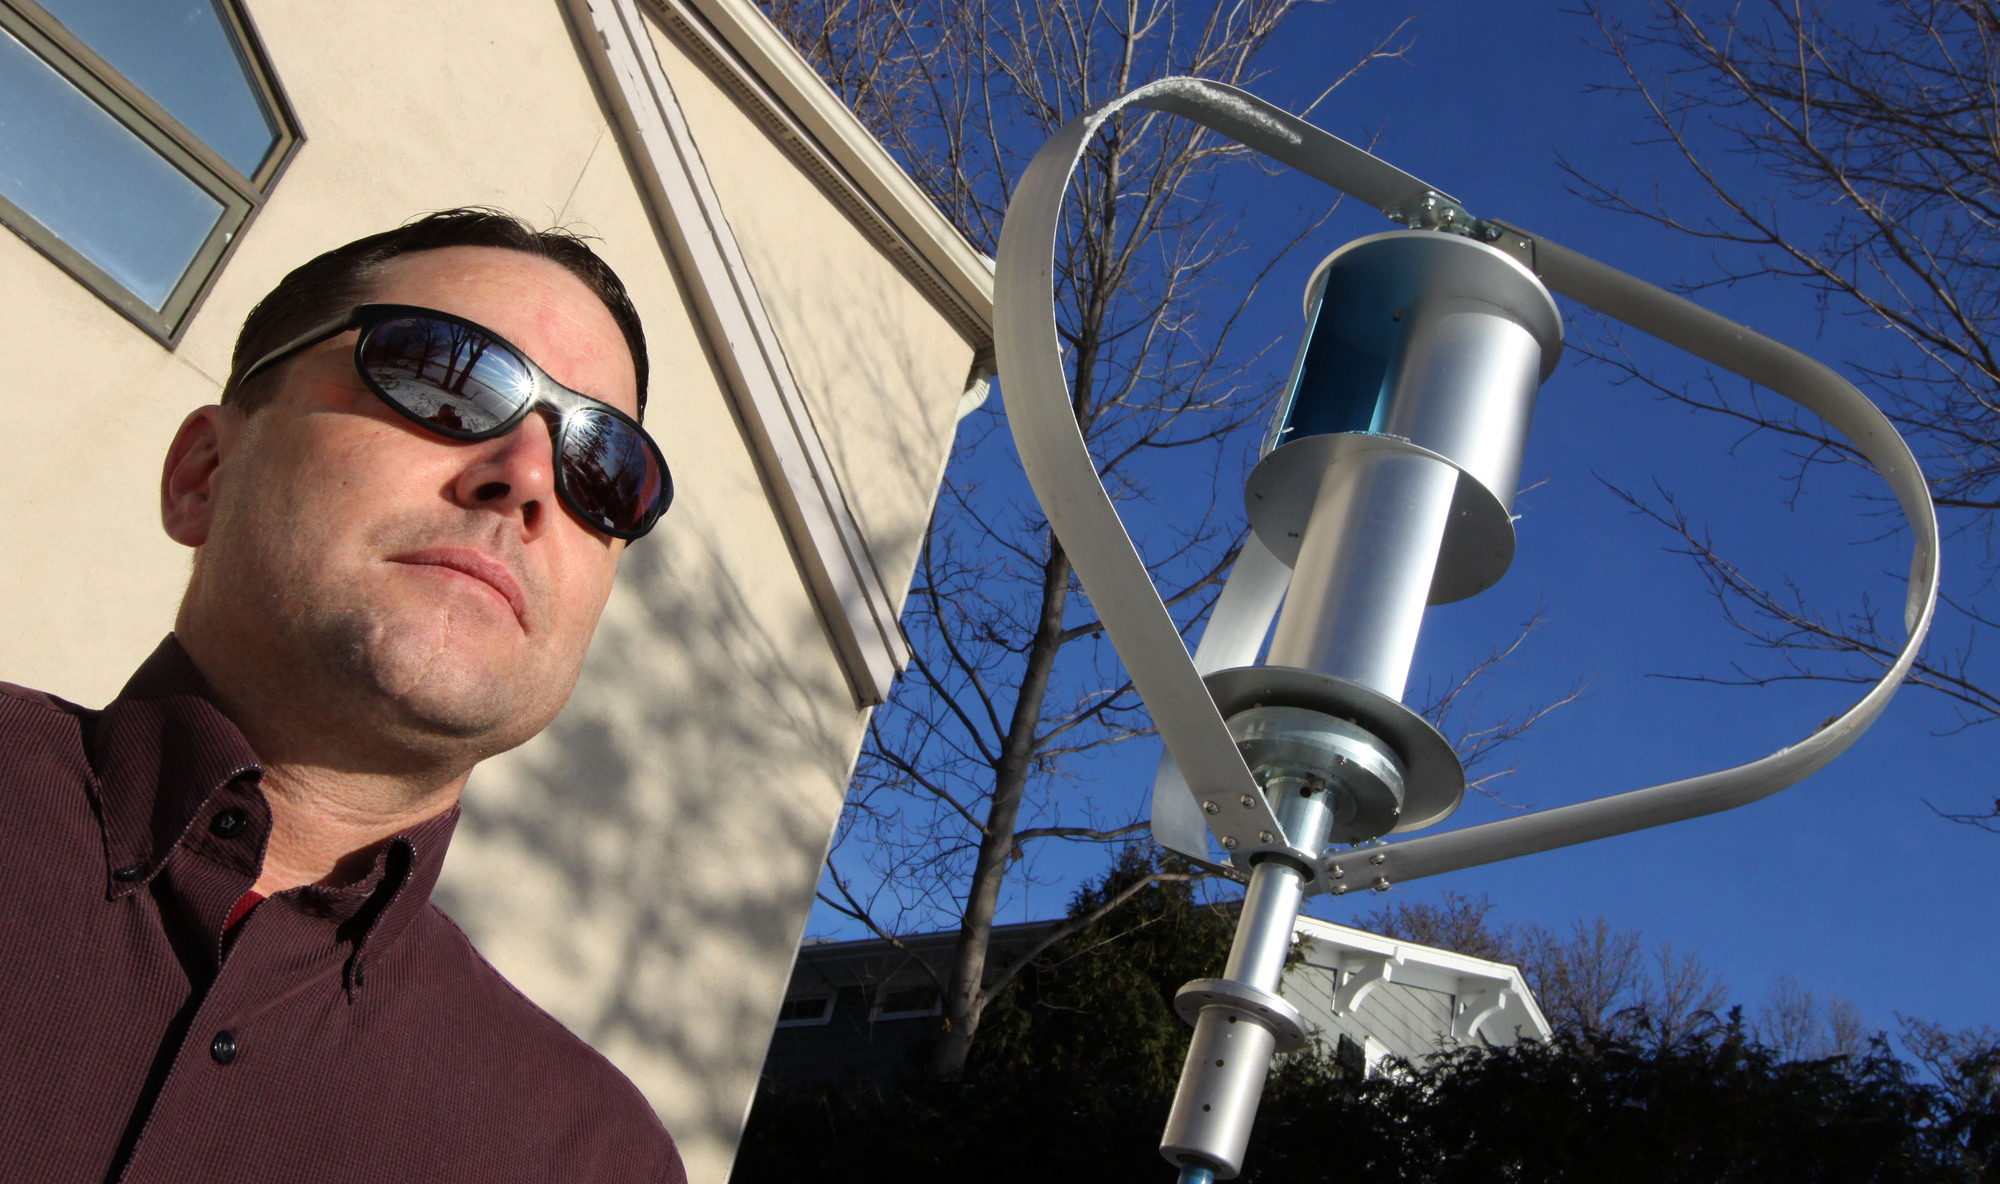 Man Sentenced To Six Months In Jail For Installing a Wind Turbine !